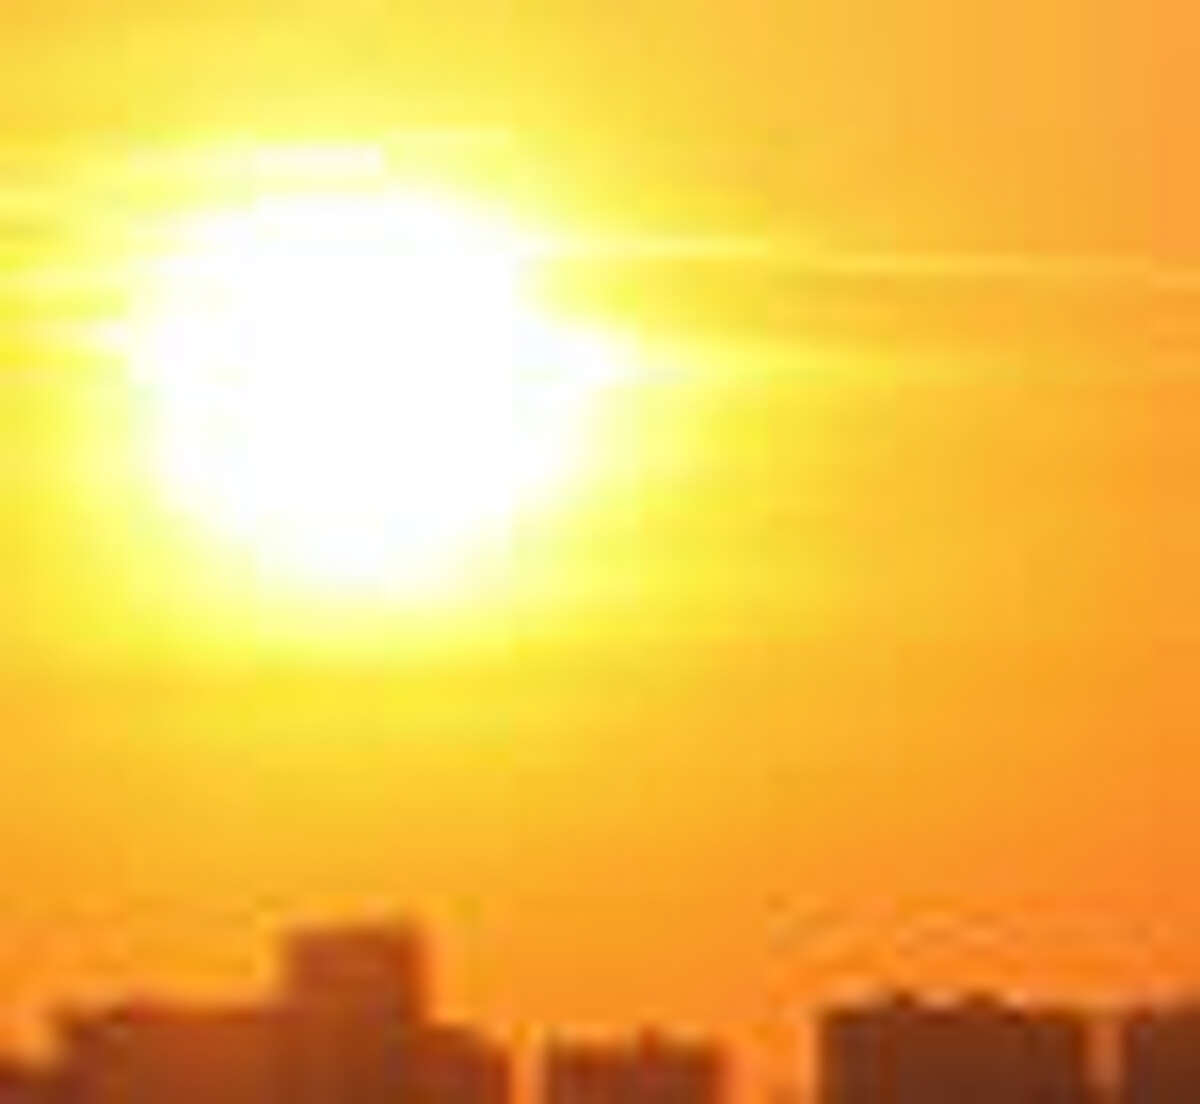 Houston's high temperature on Monday, Sept. 19, 2016, is expected to be about 97 degrees, with a